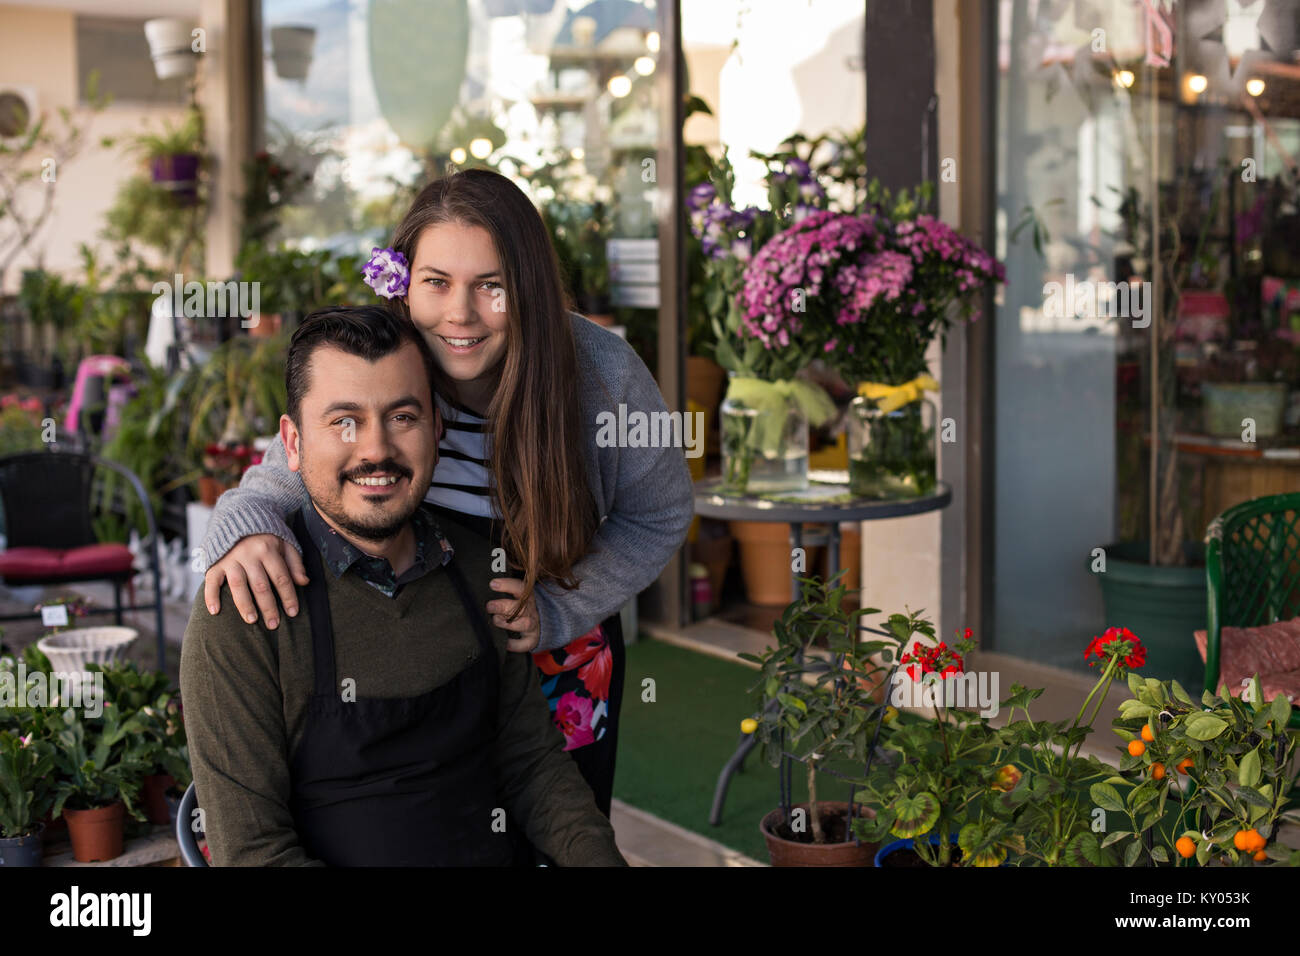 Smiling florist couple in a flower shop. Male wearing black apron sitting in a chair and smiling female with a lisianthus - Stock Image